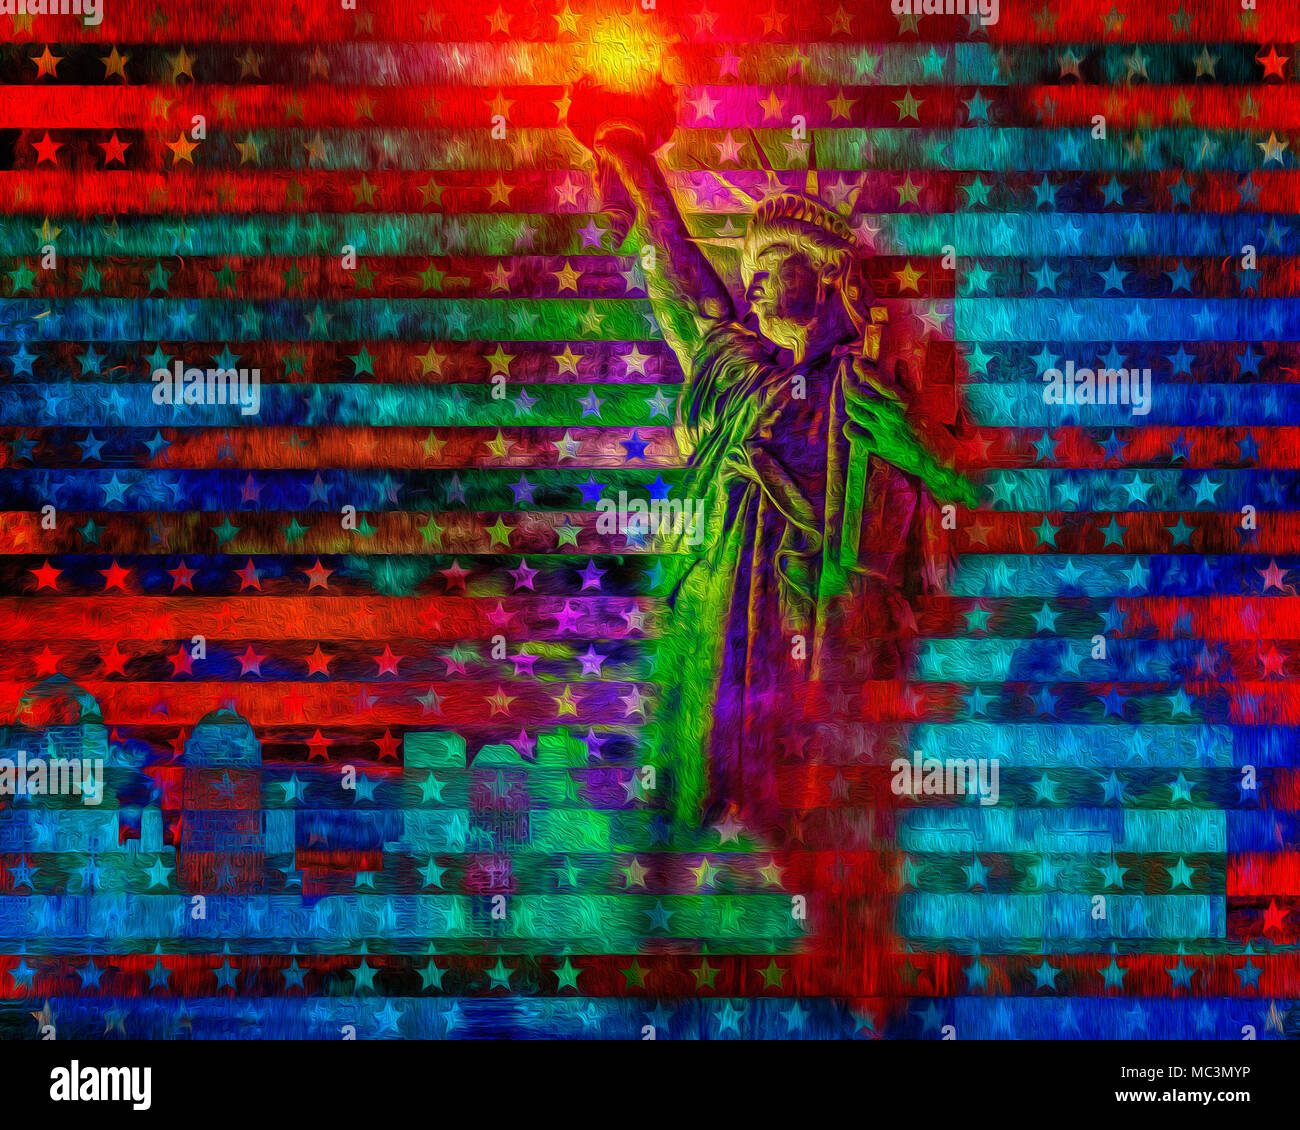 Digitale Kunst Digitale Kunst Stock Photos Digitale Kunst Stock Images Alamy